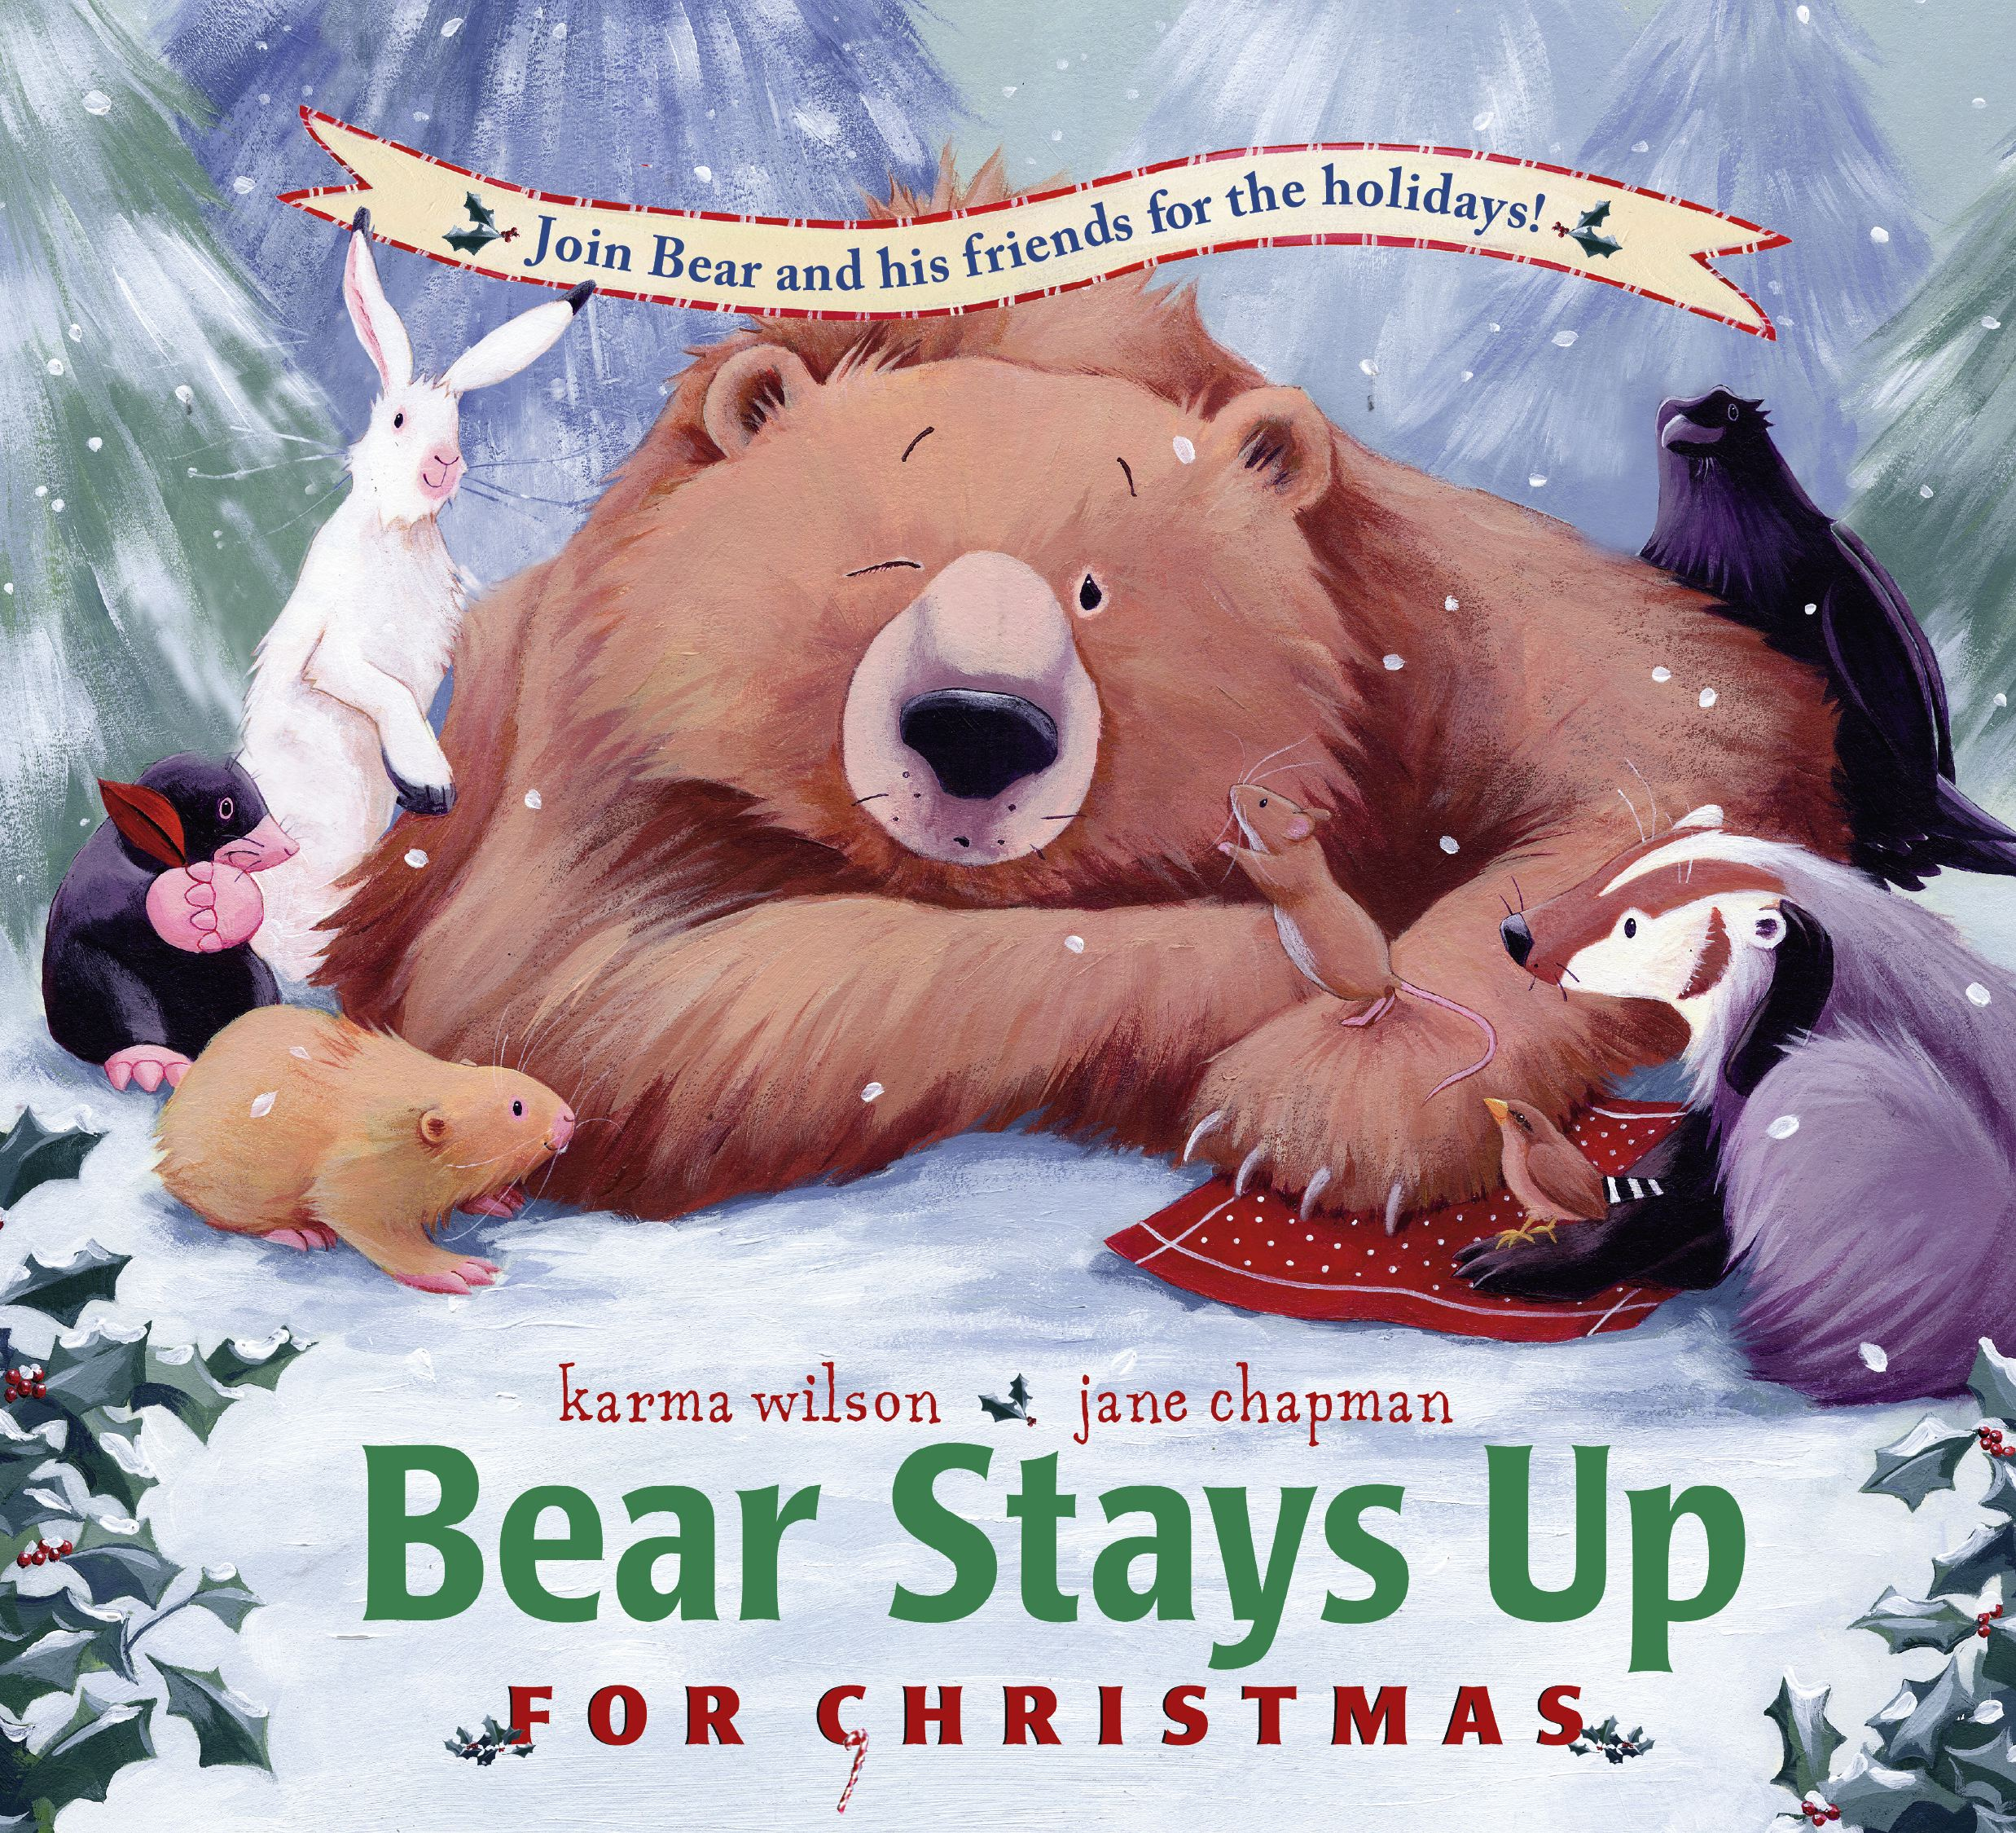 Bear-stays-up-for-christmas-9781416958963_hr